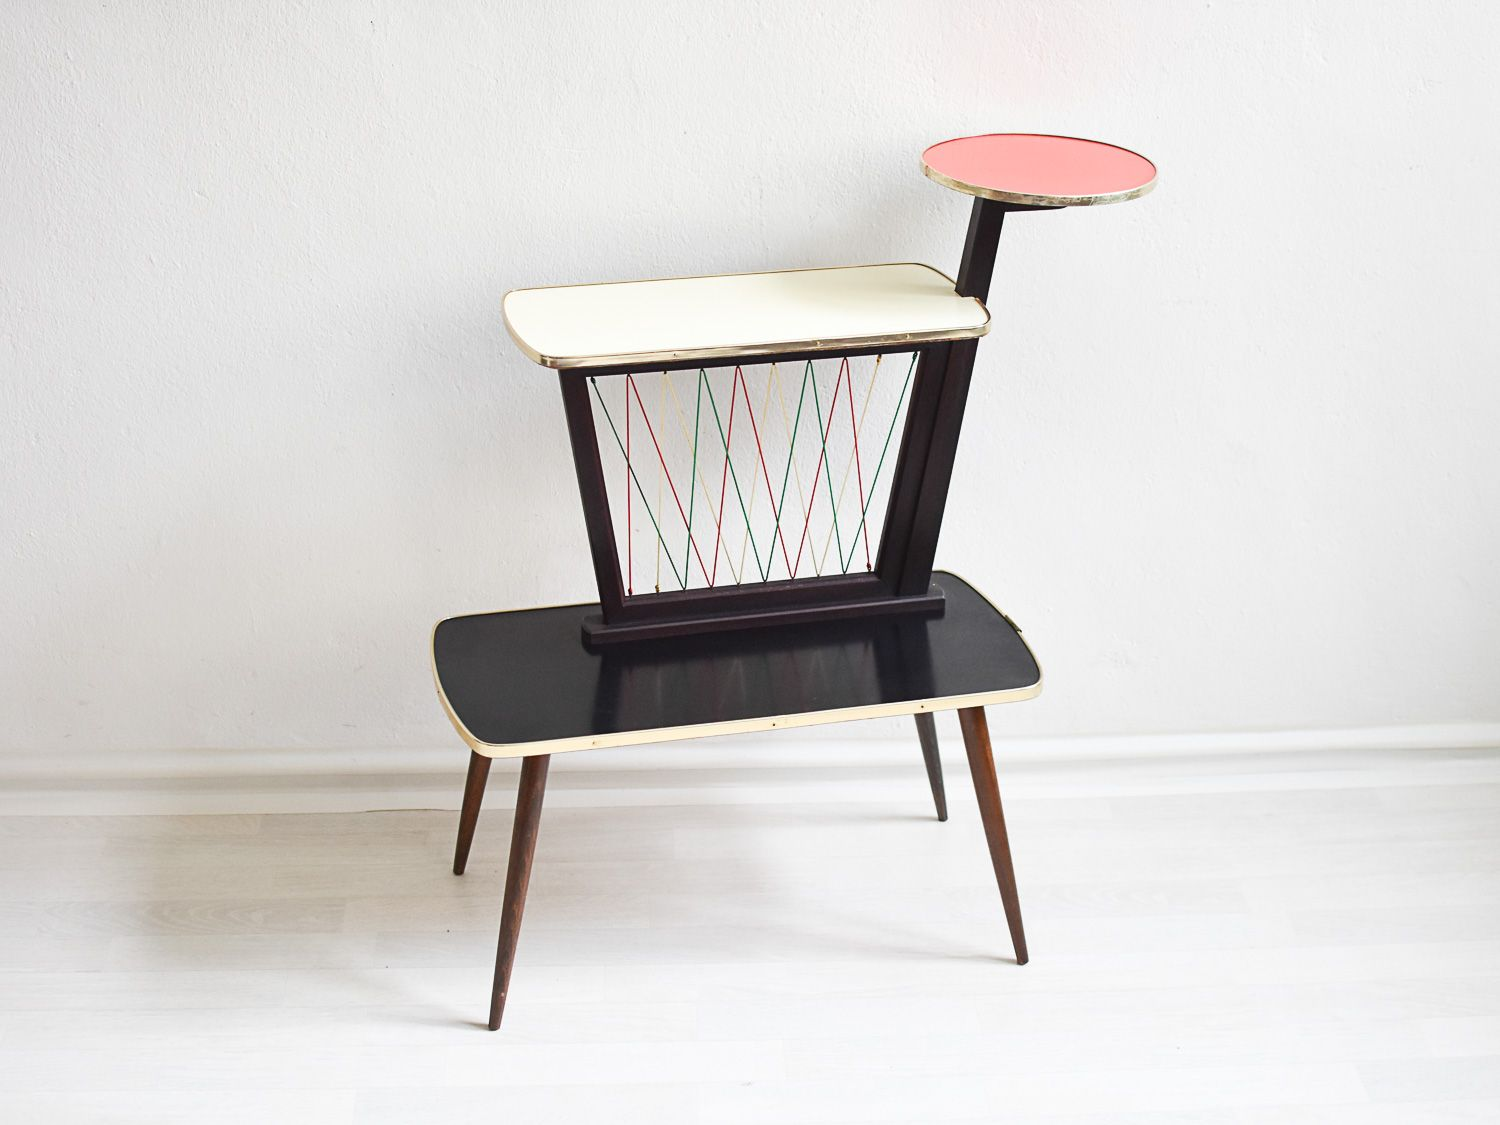 Mid century plant stand from opal mobel for sale at pamono - Mid century mobel ...